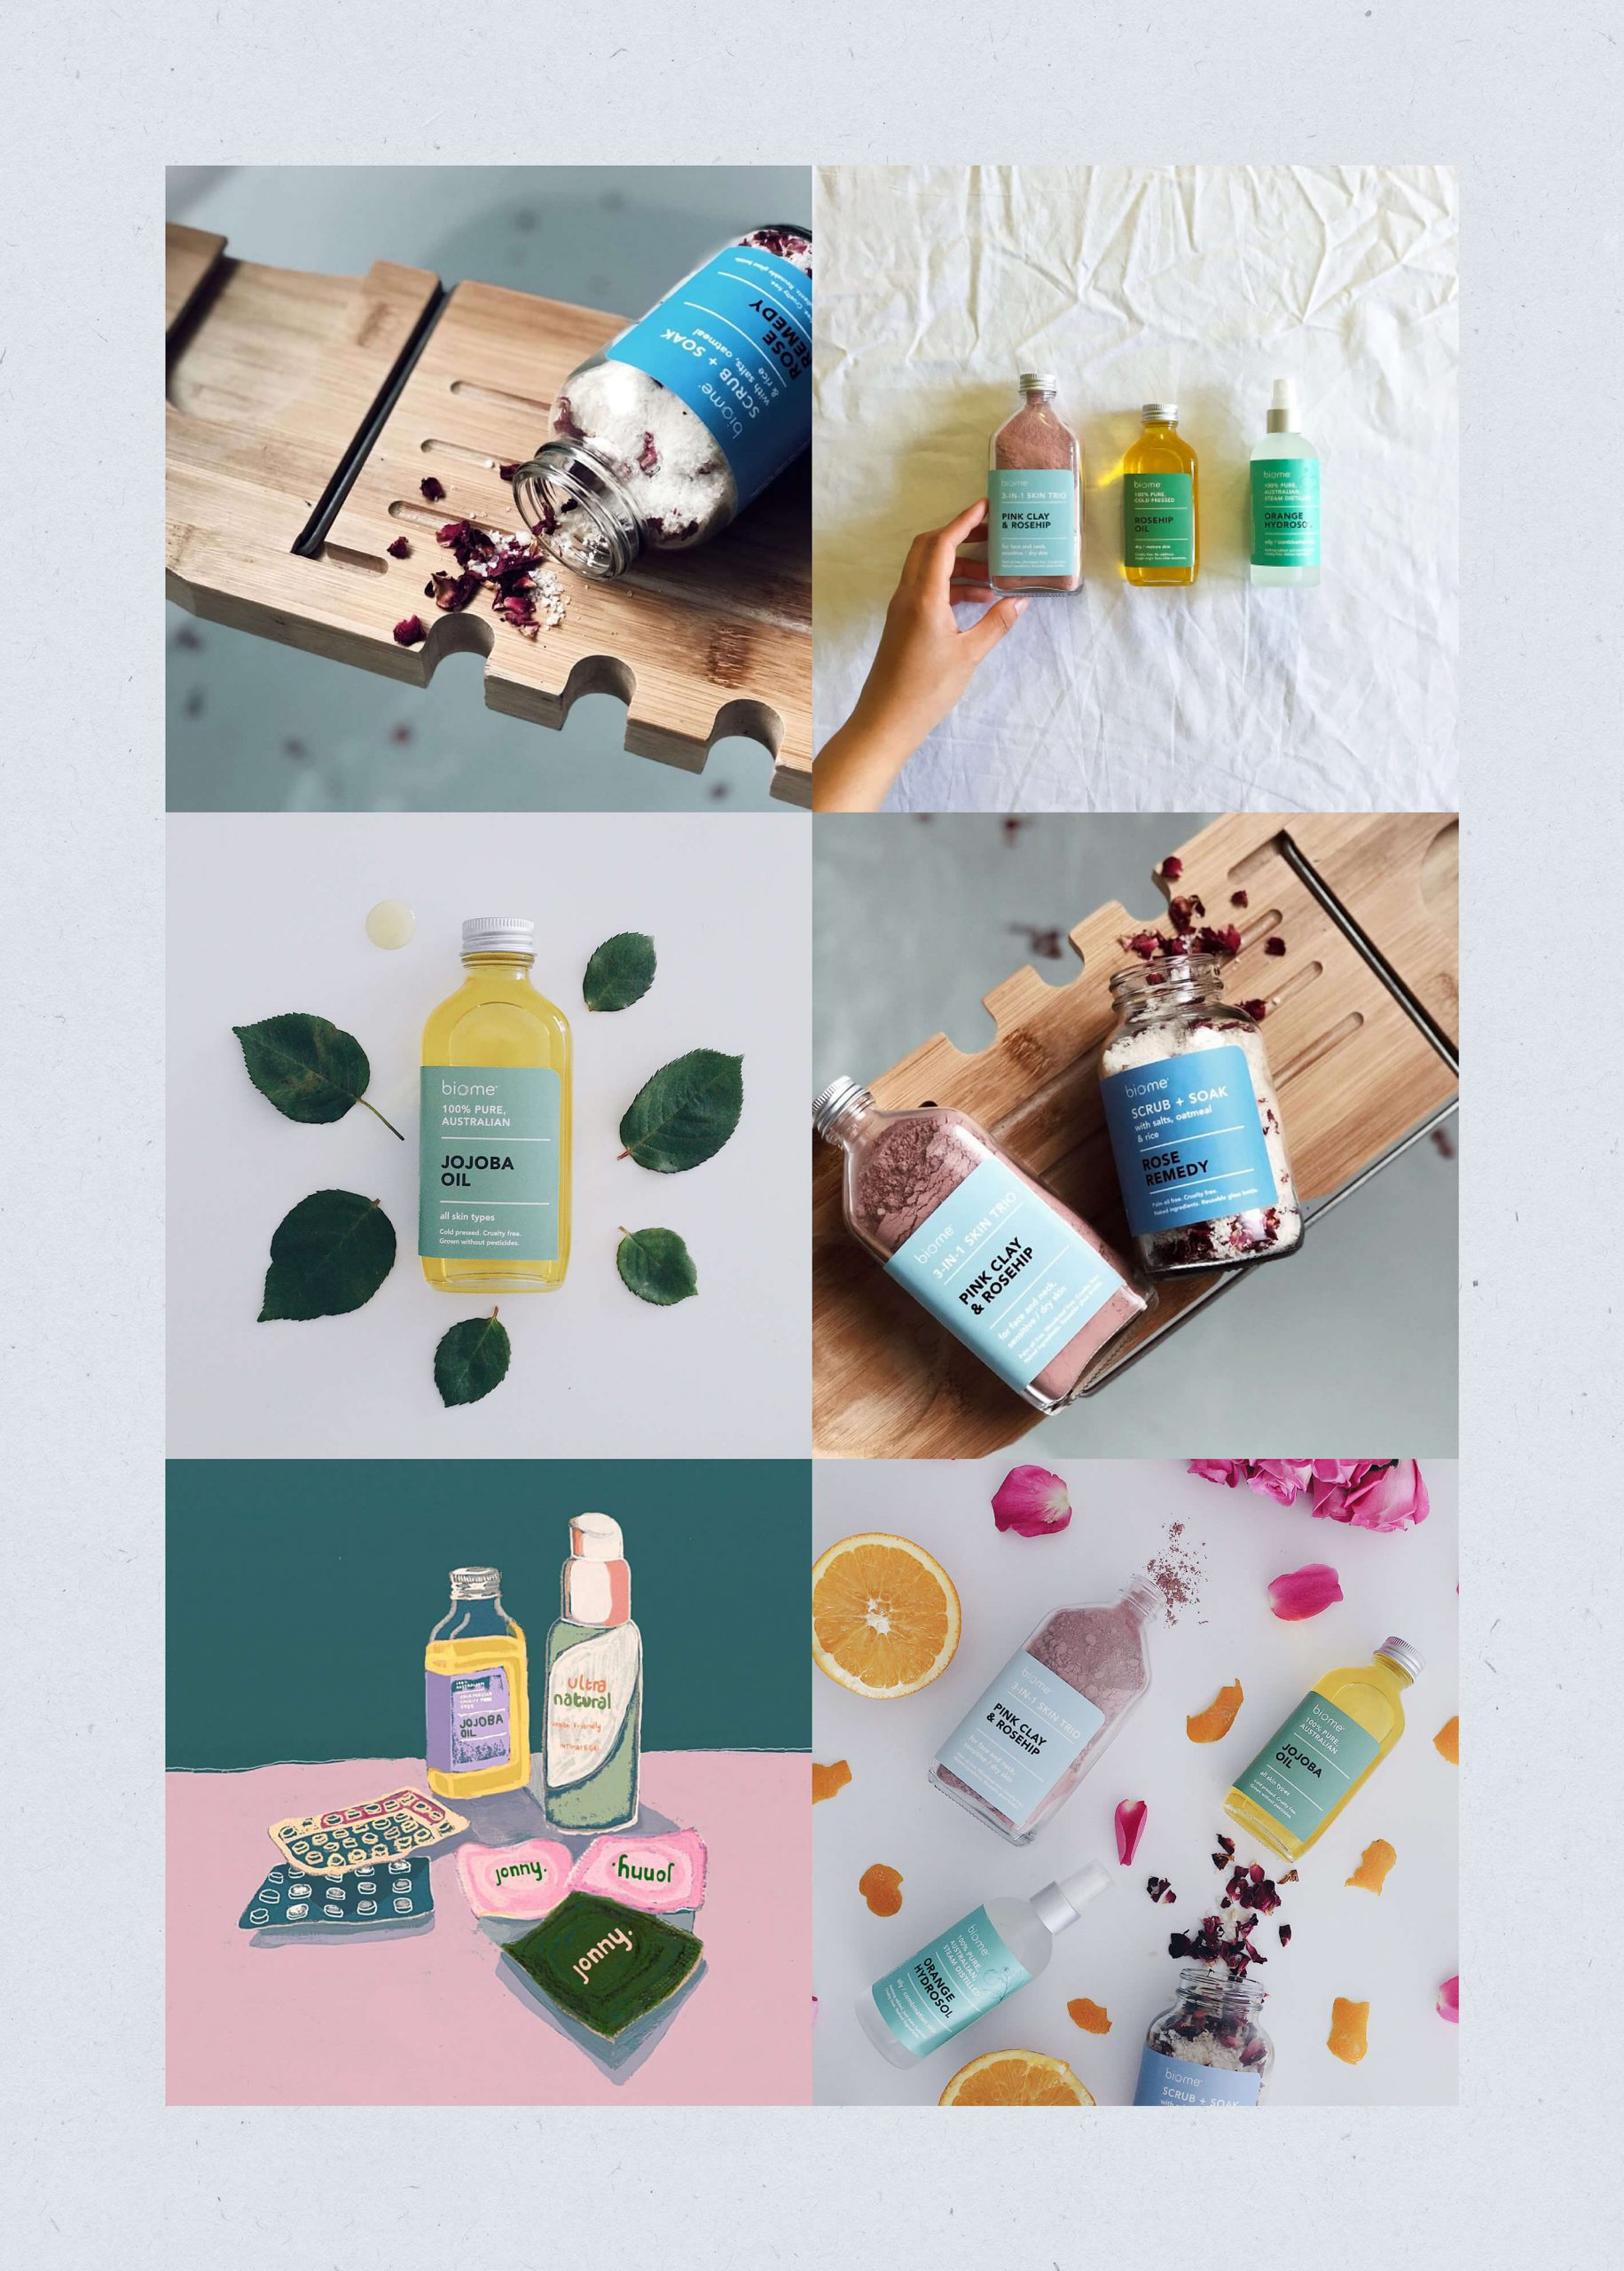 social media overview of user generated skincare content